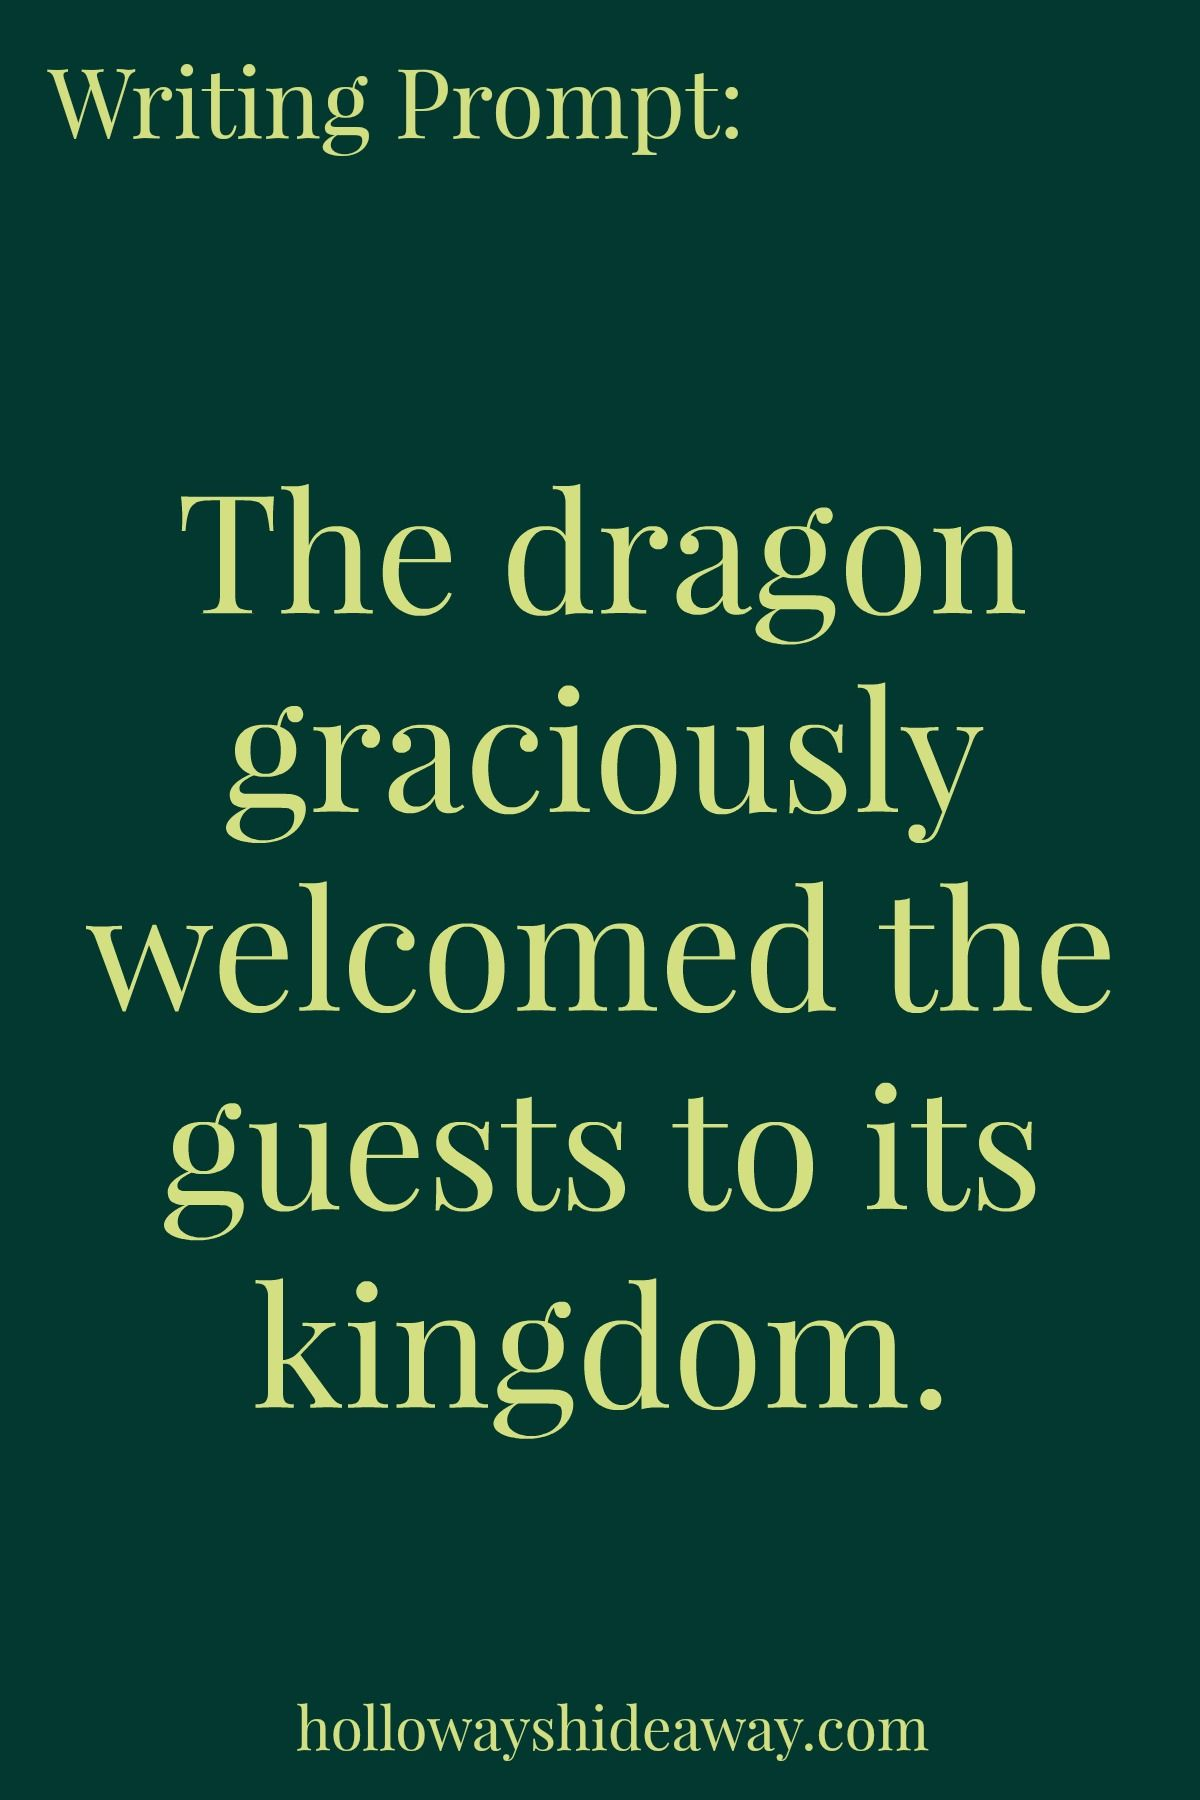 fantasy writing prompts-feb2017-the dragon graciously welcomed the